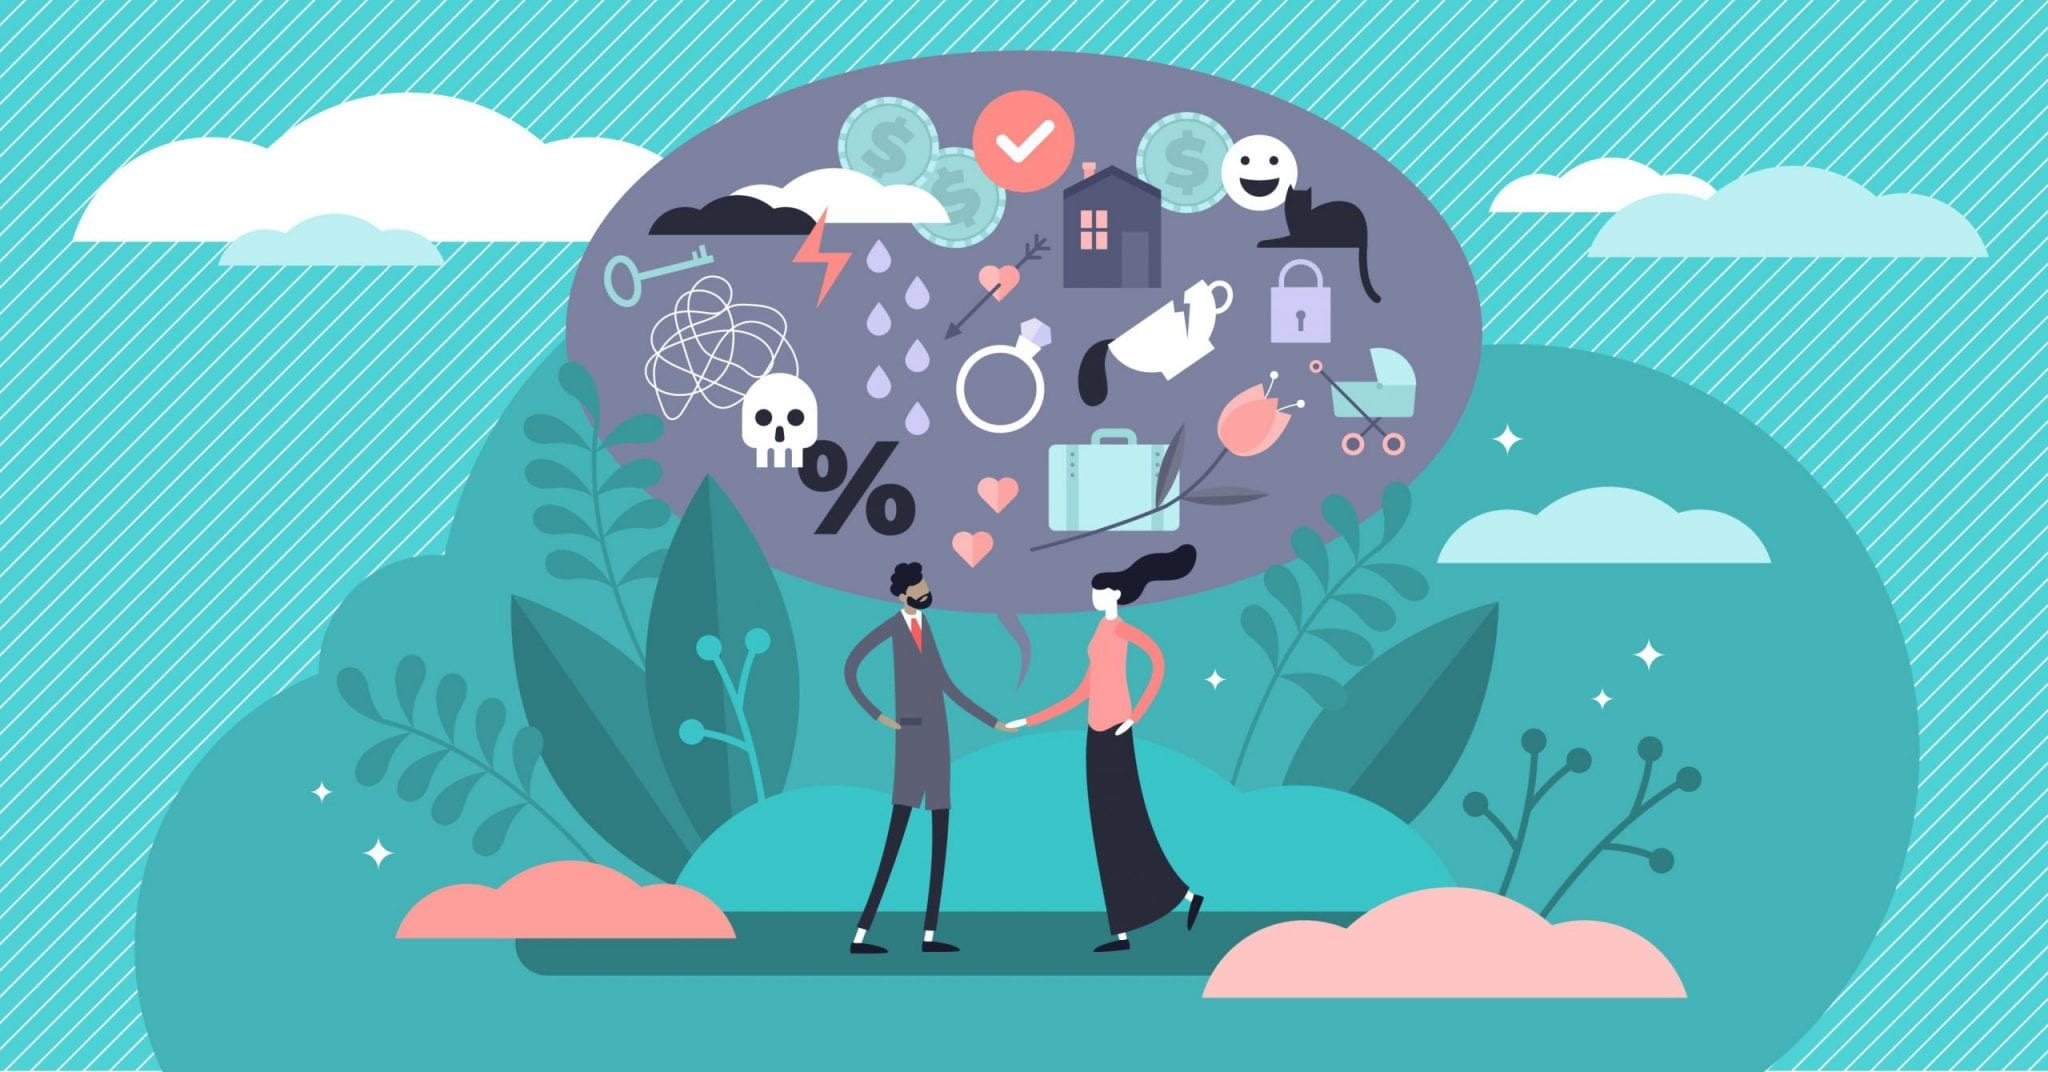 Relationship Vector Illustration, Flat Tiny Various Feelings Person Concept. Abstract Mutual Emotions and Link Type Between Friends, Siblings or Lovers. Psychological Connection Diversity Collection